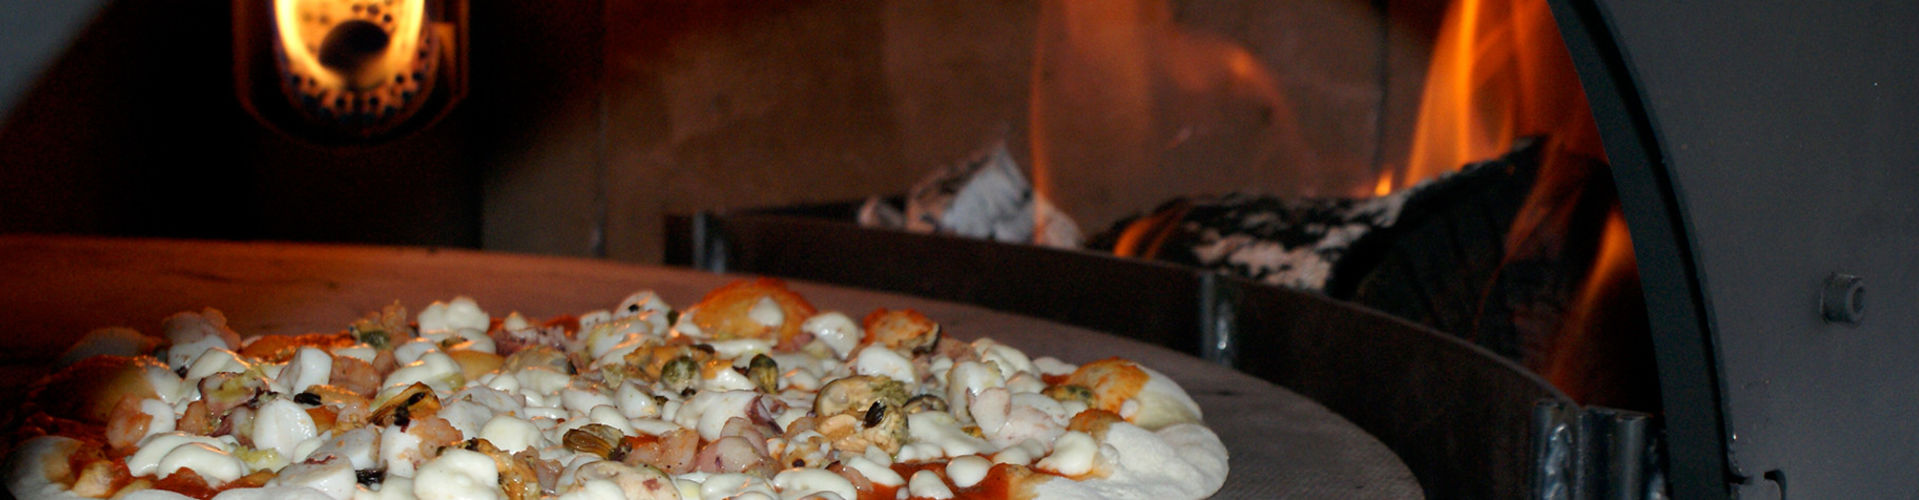 woodness-pizzapizza-oven